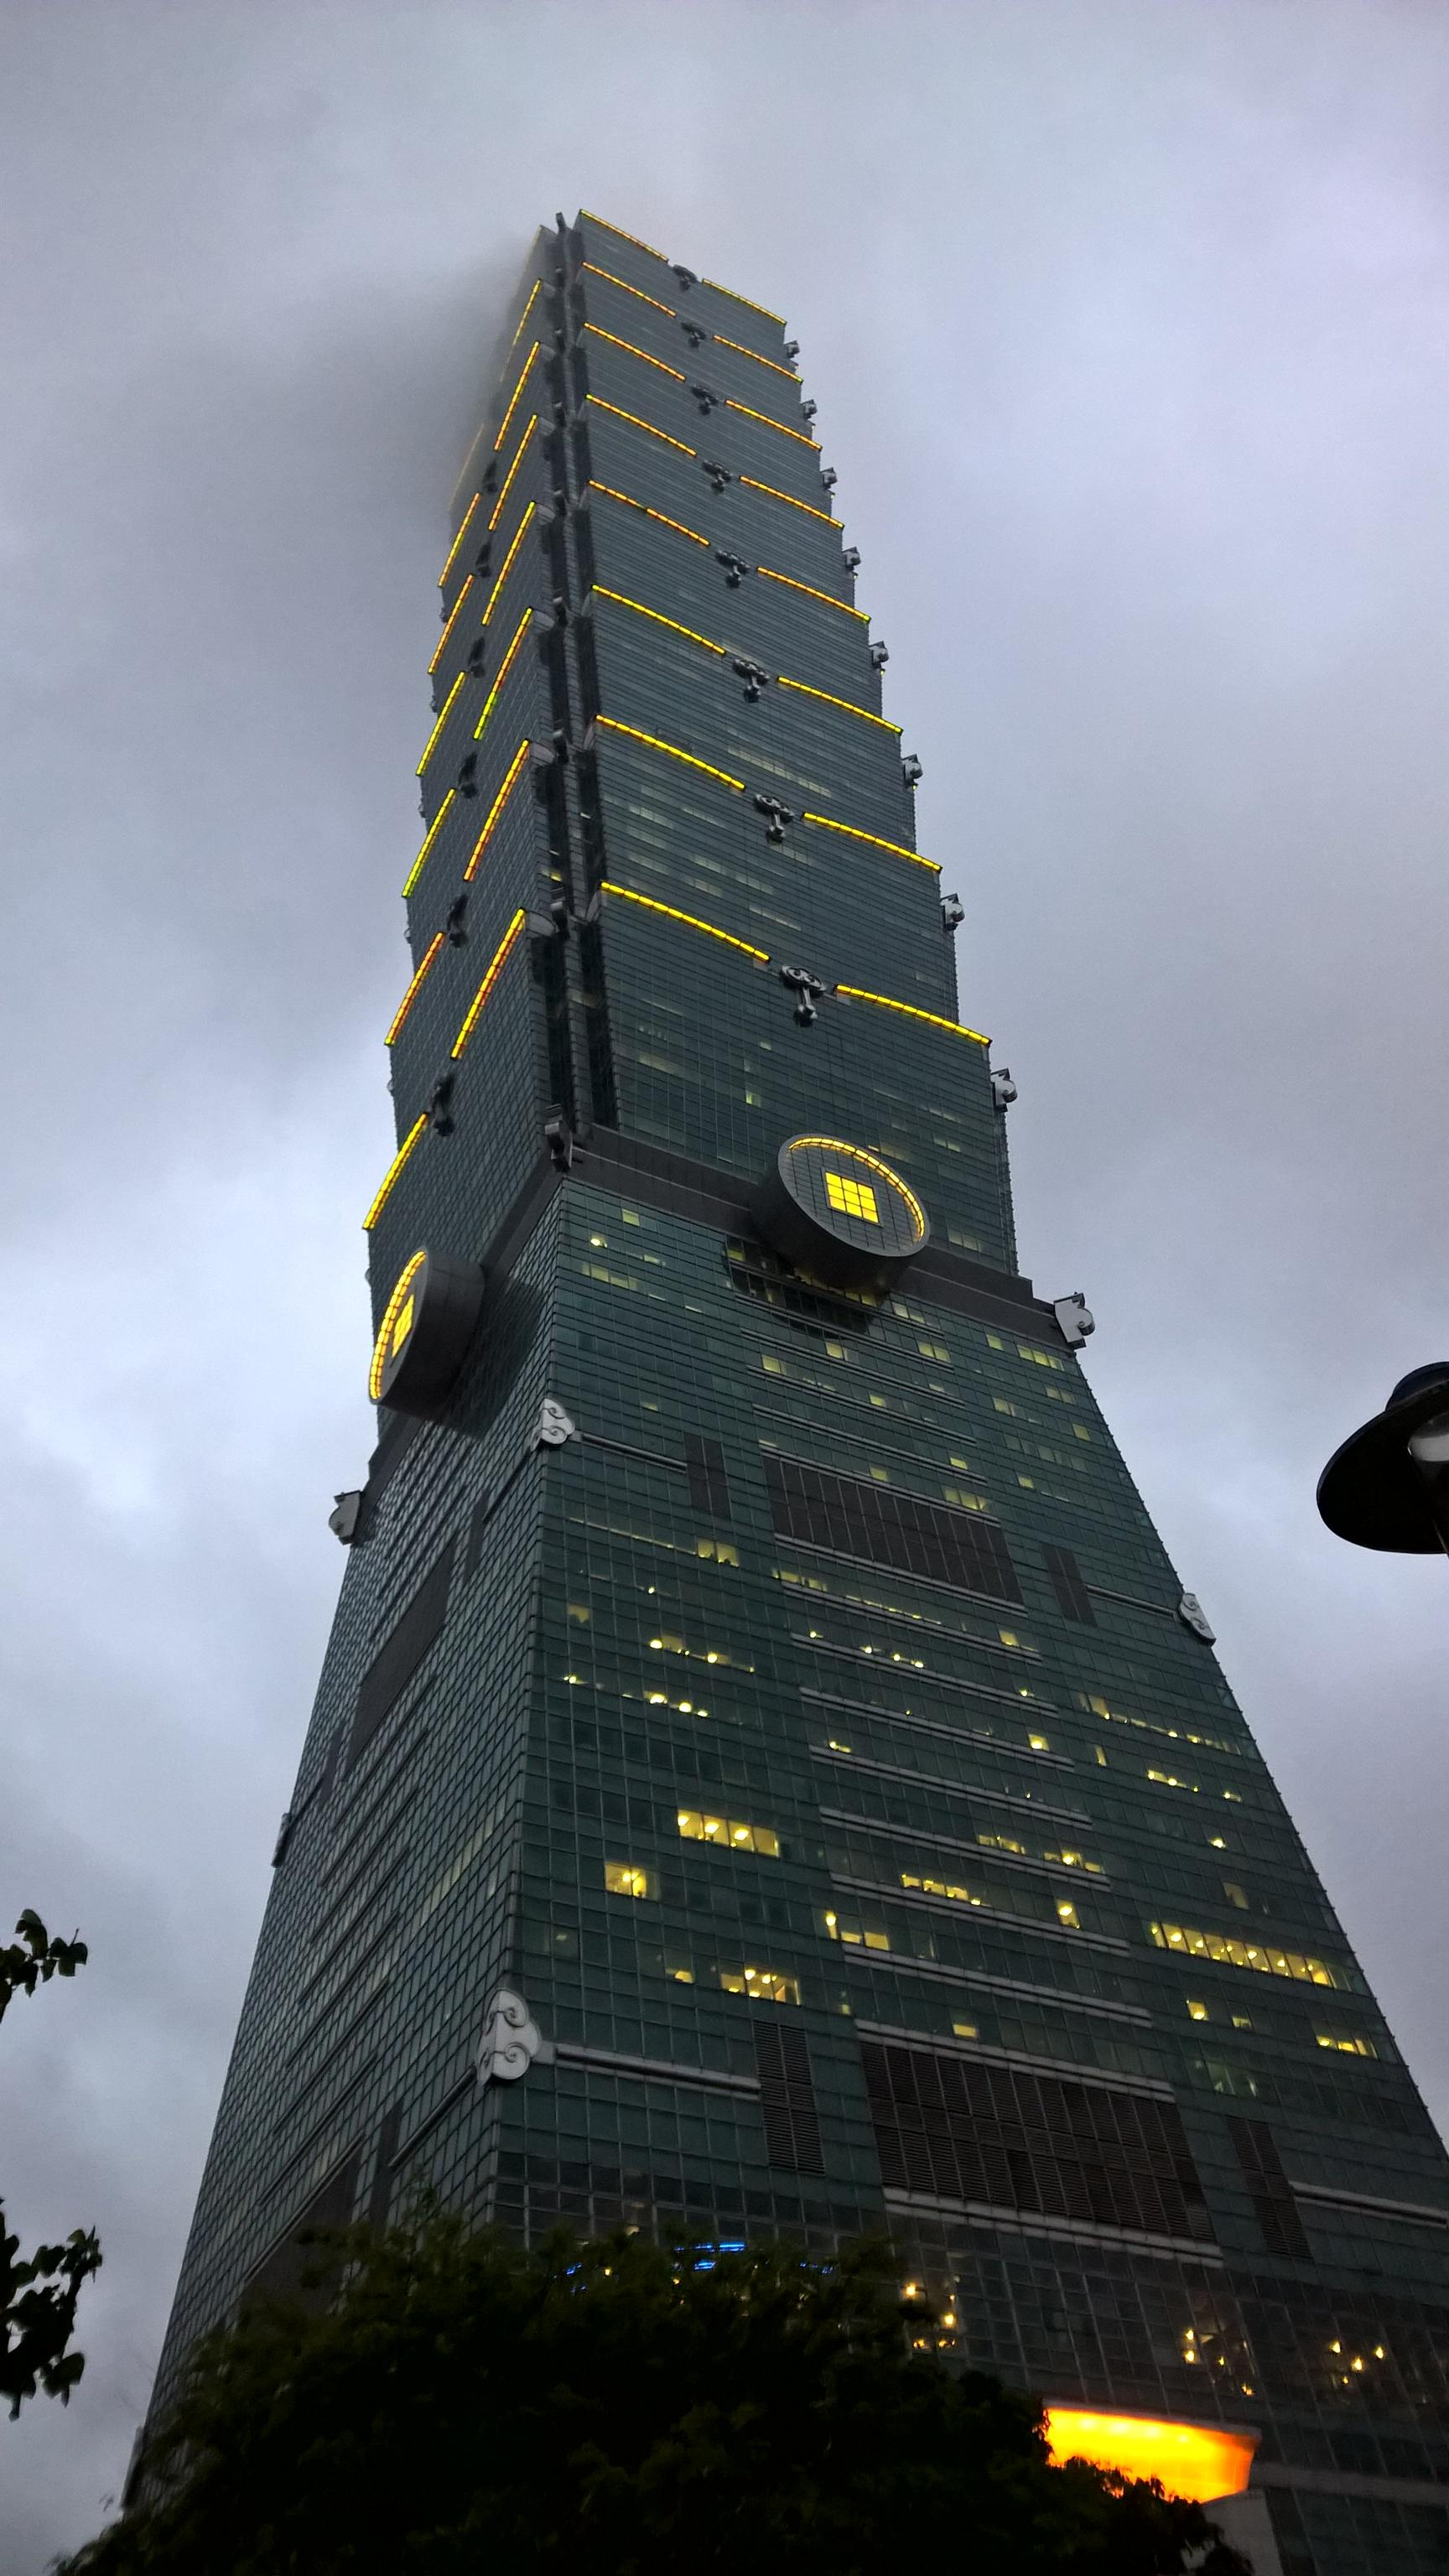 Taipei 101 in Taiwan disappearing into the clouds.